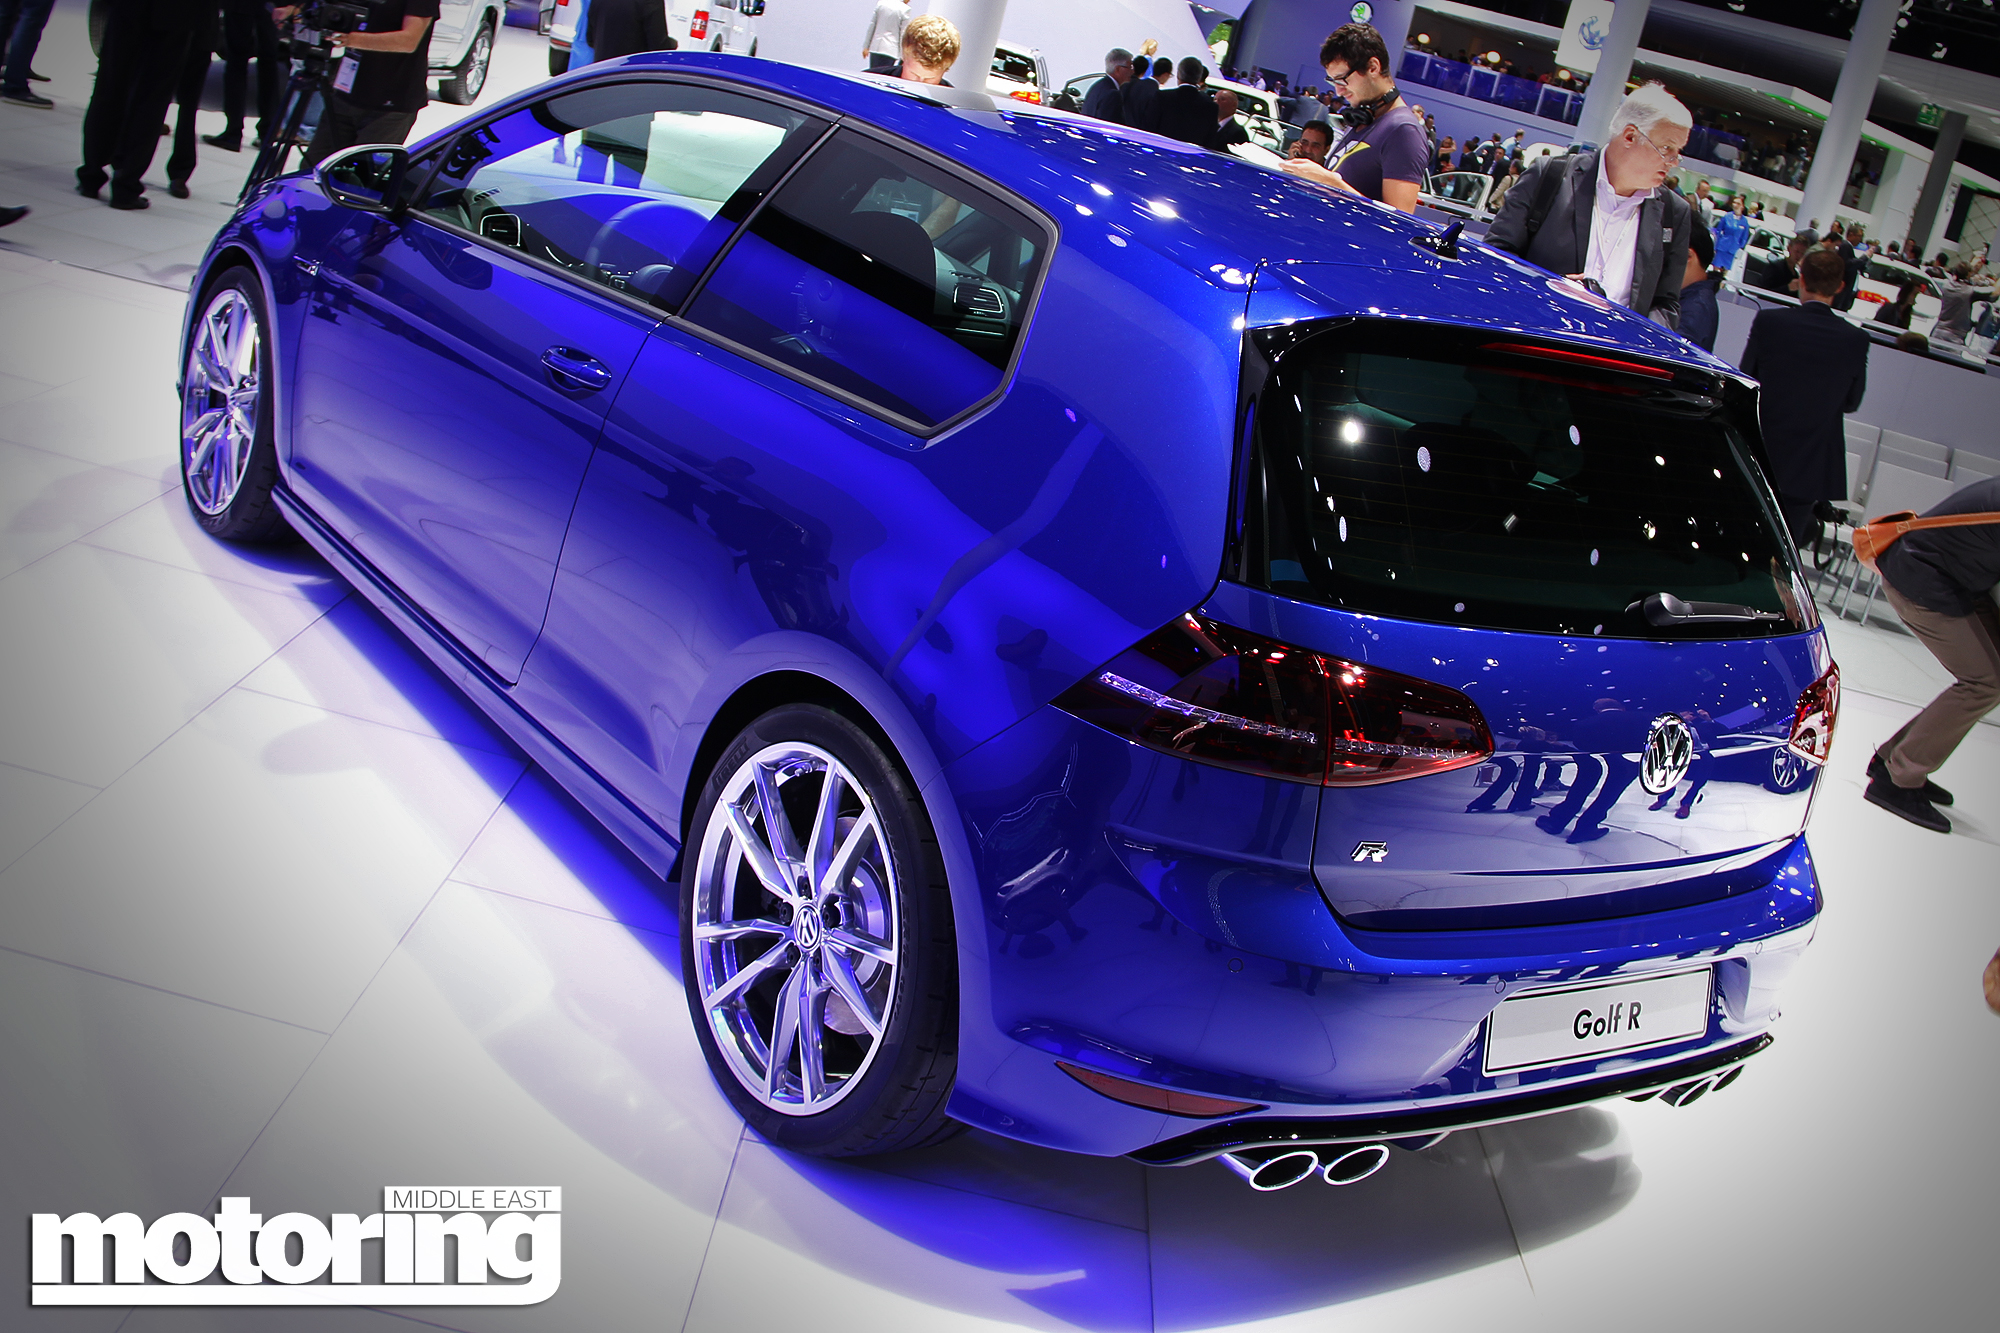 Frankfurt 2013 Volkswagen Golf R Motoring Middle East Car News Reviews And Buying Guidesmotoring Middle East Car News Reviews And Buying Guides